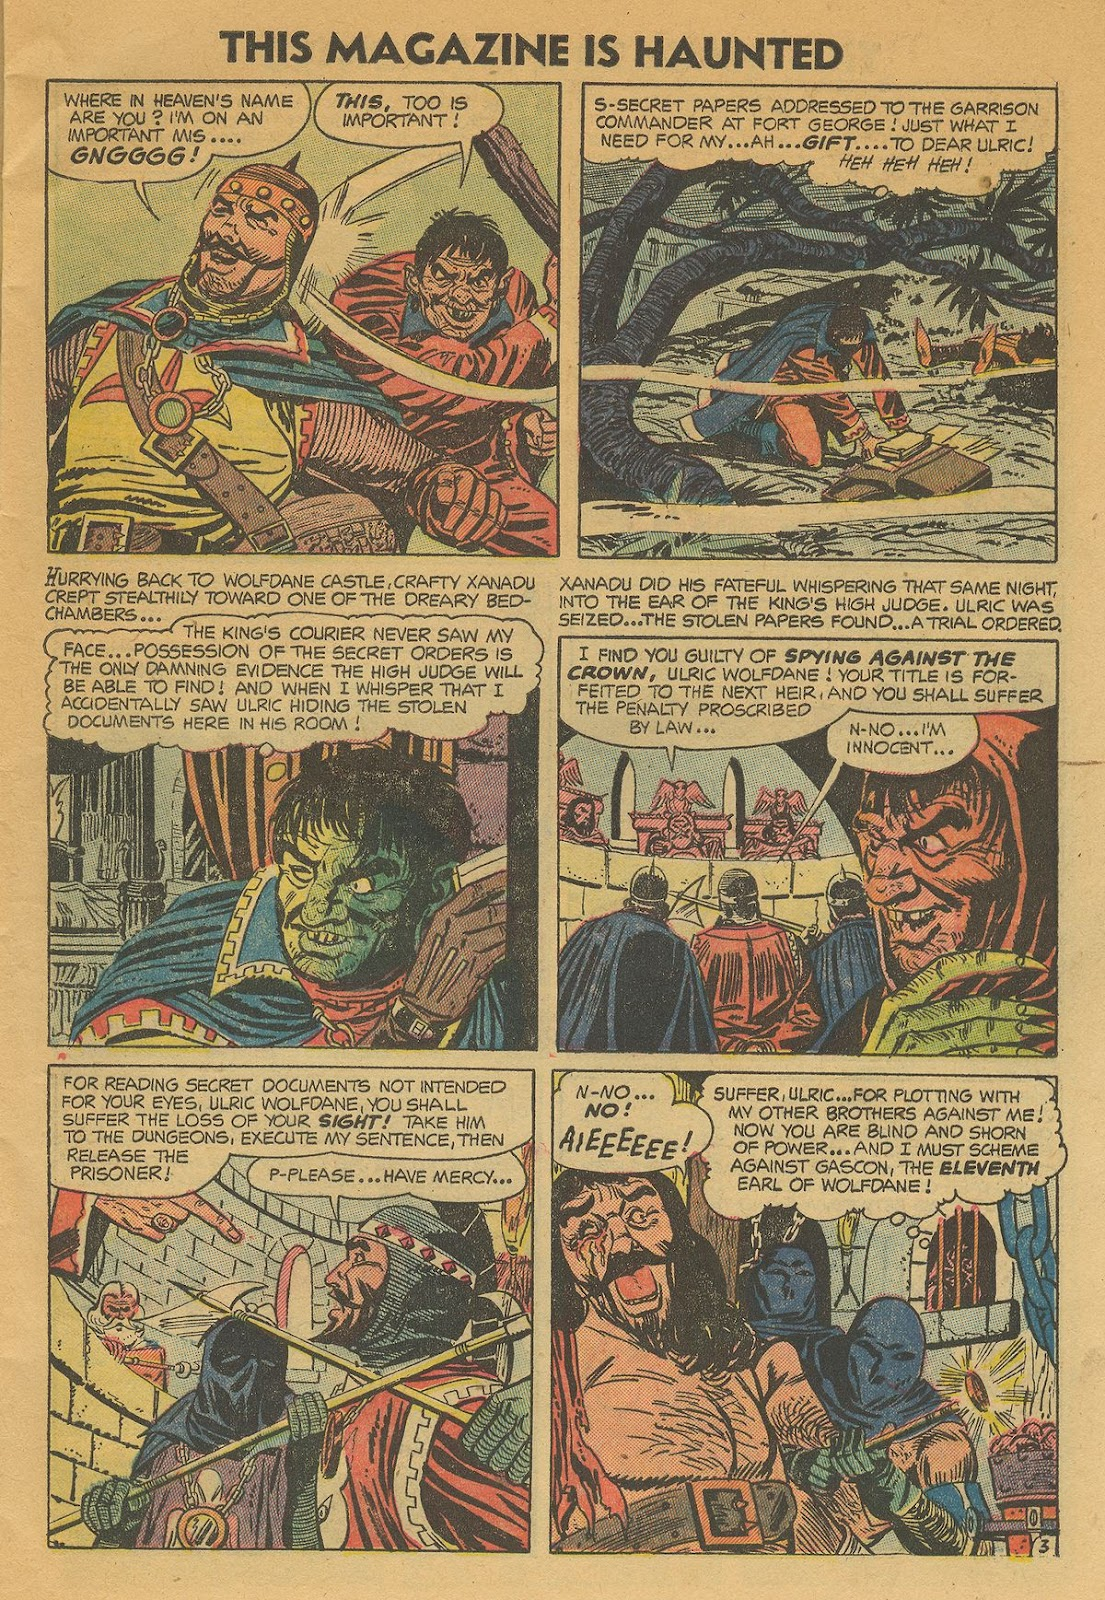 Read online This Magazine Is Haunted comic -  Issue #18 - 5